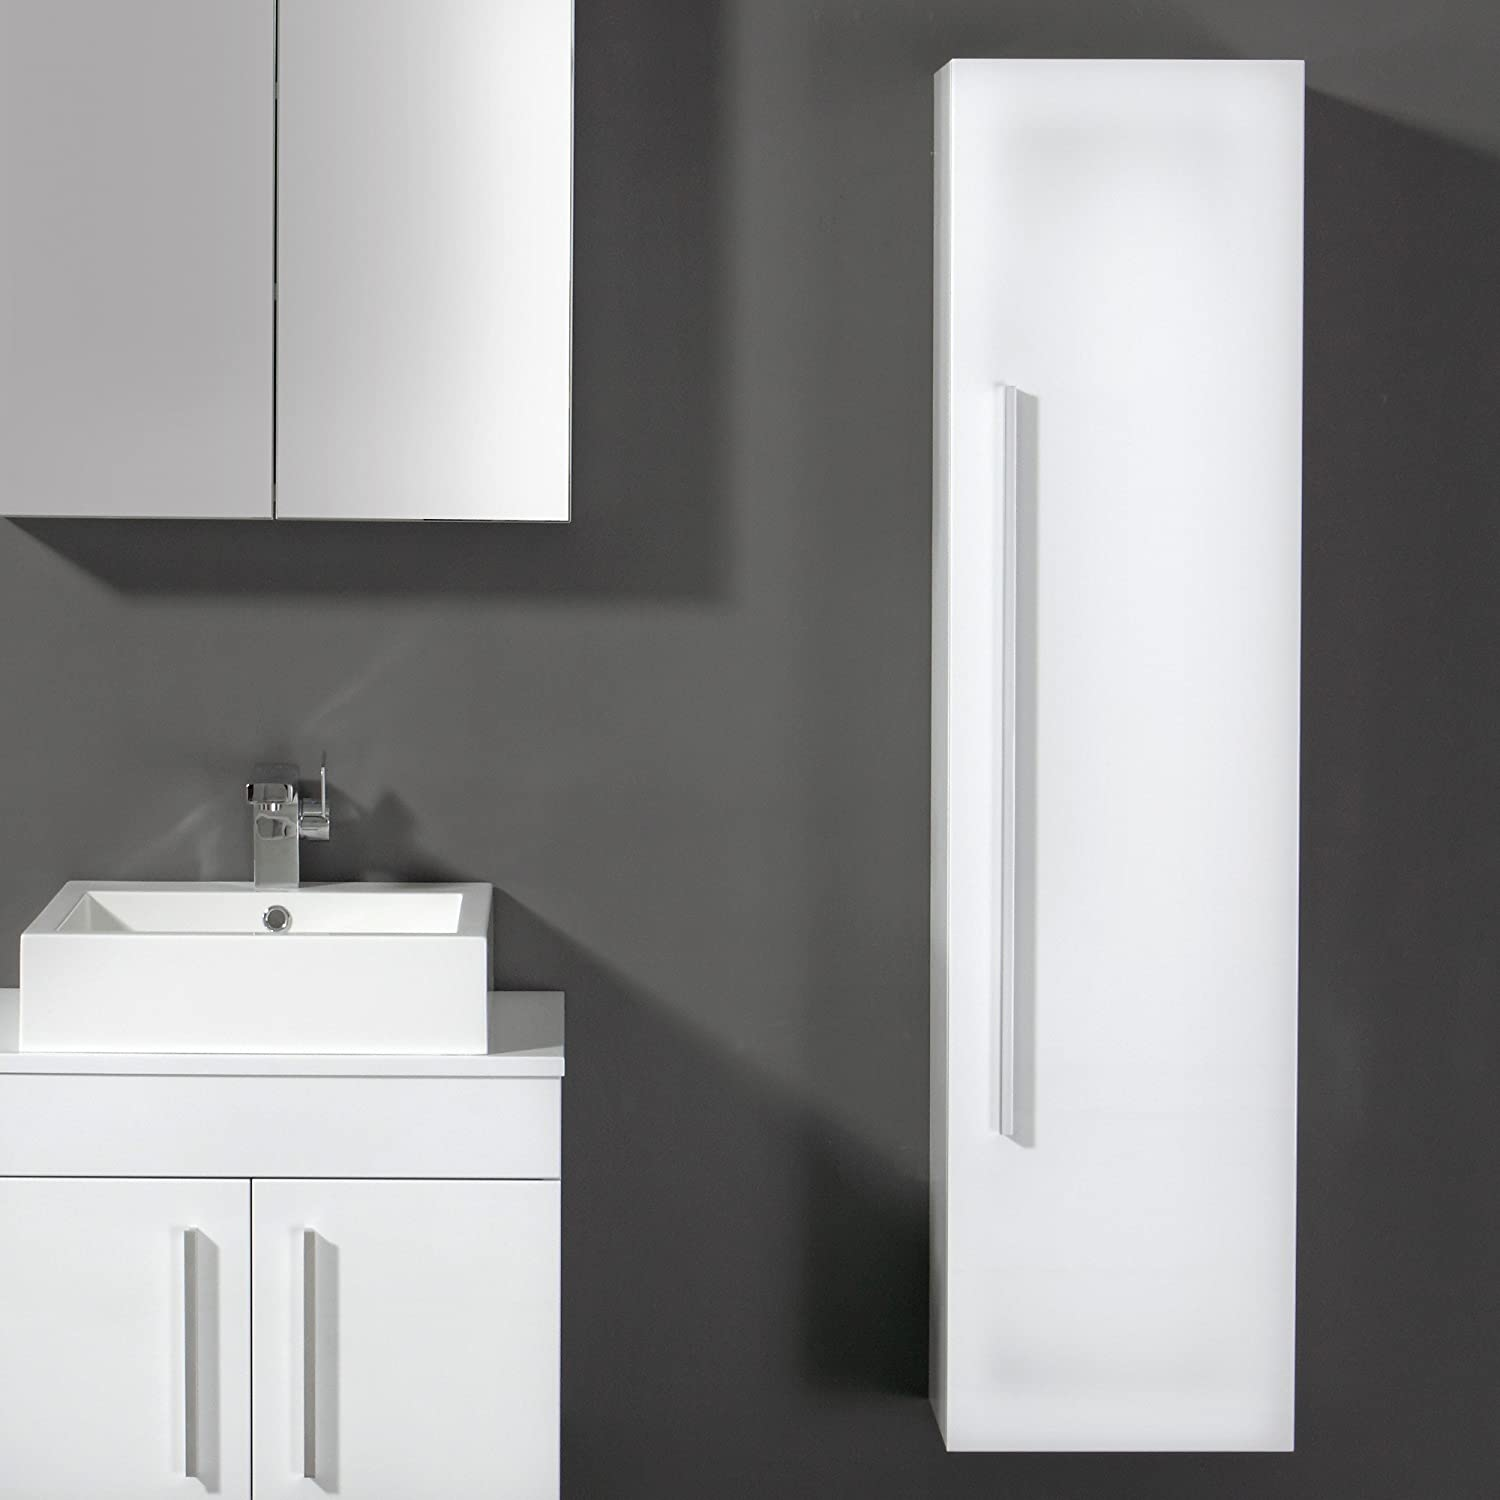 Charmant Bathroom Cabinet 1400x350 White Storage Wall Mounted Hung Side Unit Tall High  Gloss Finish: Amazon.co.uk: DIY U0026 Tools